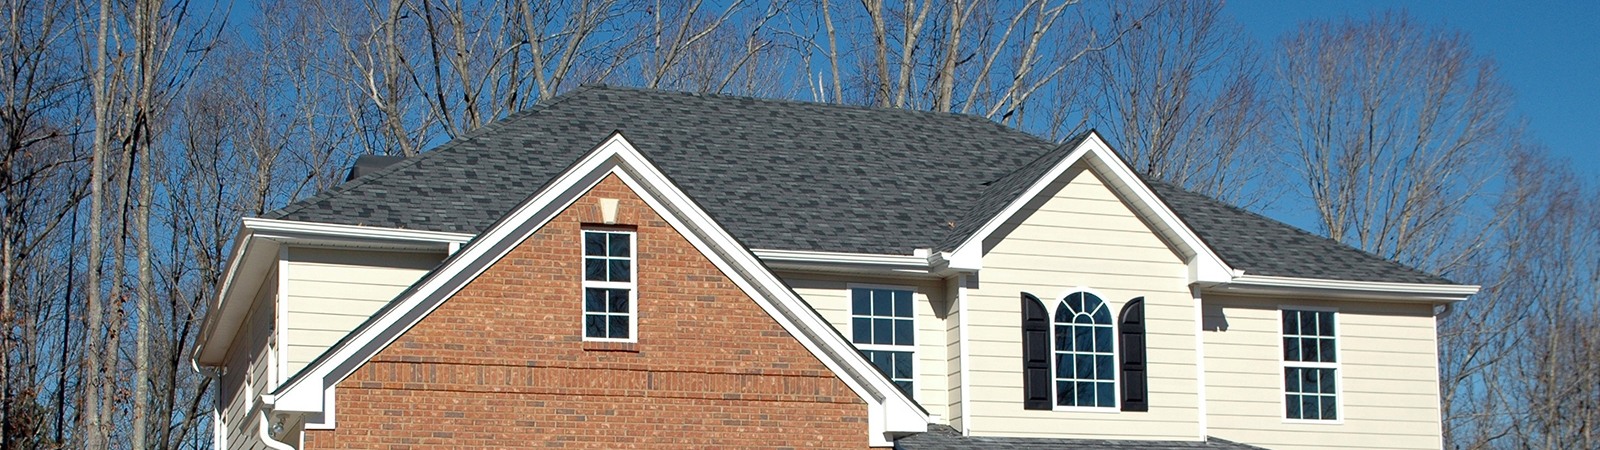 Residential roofing in savage